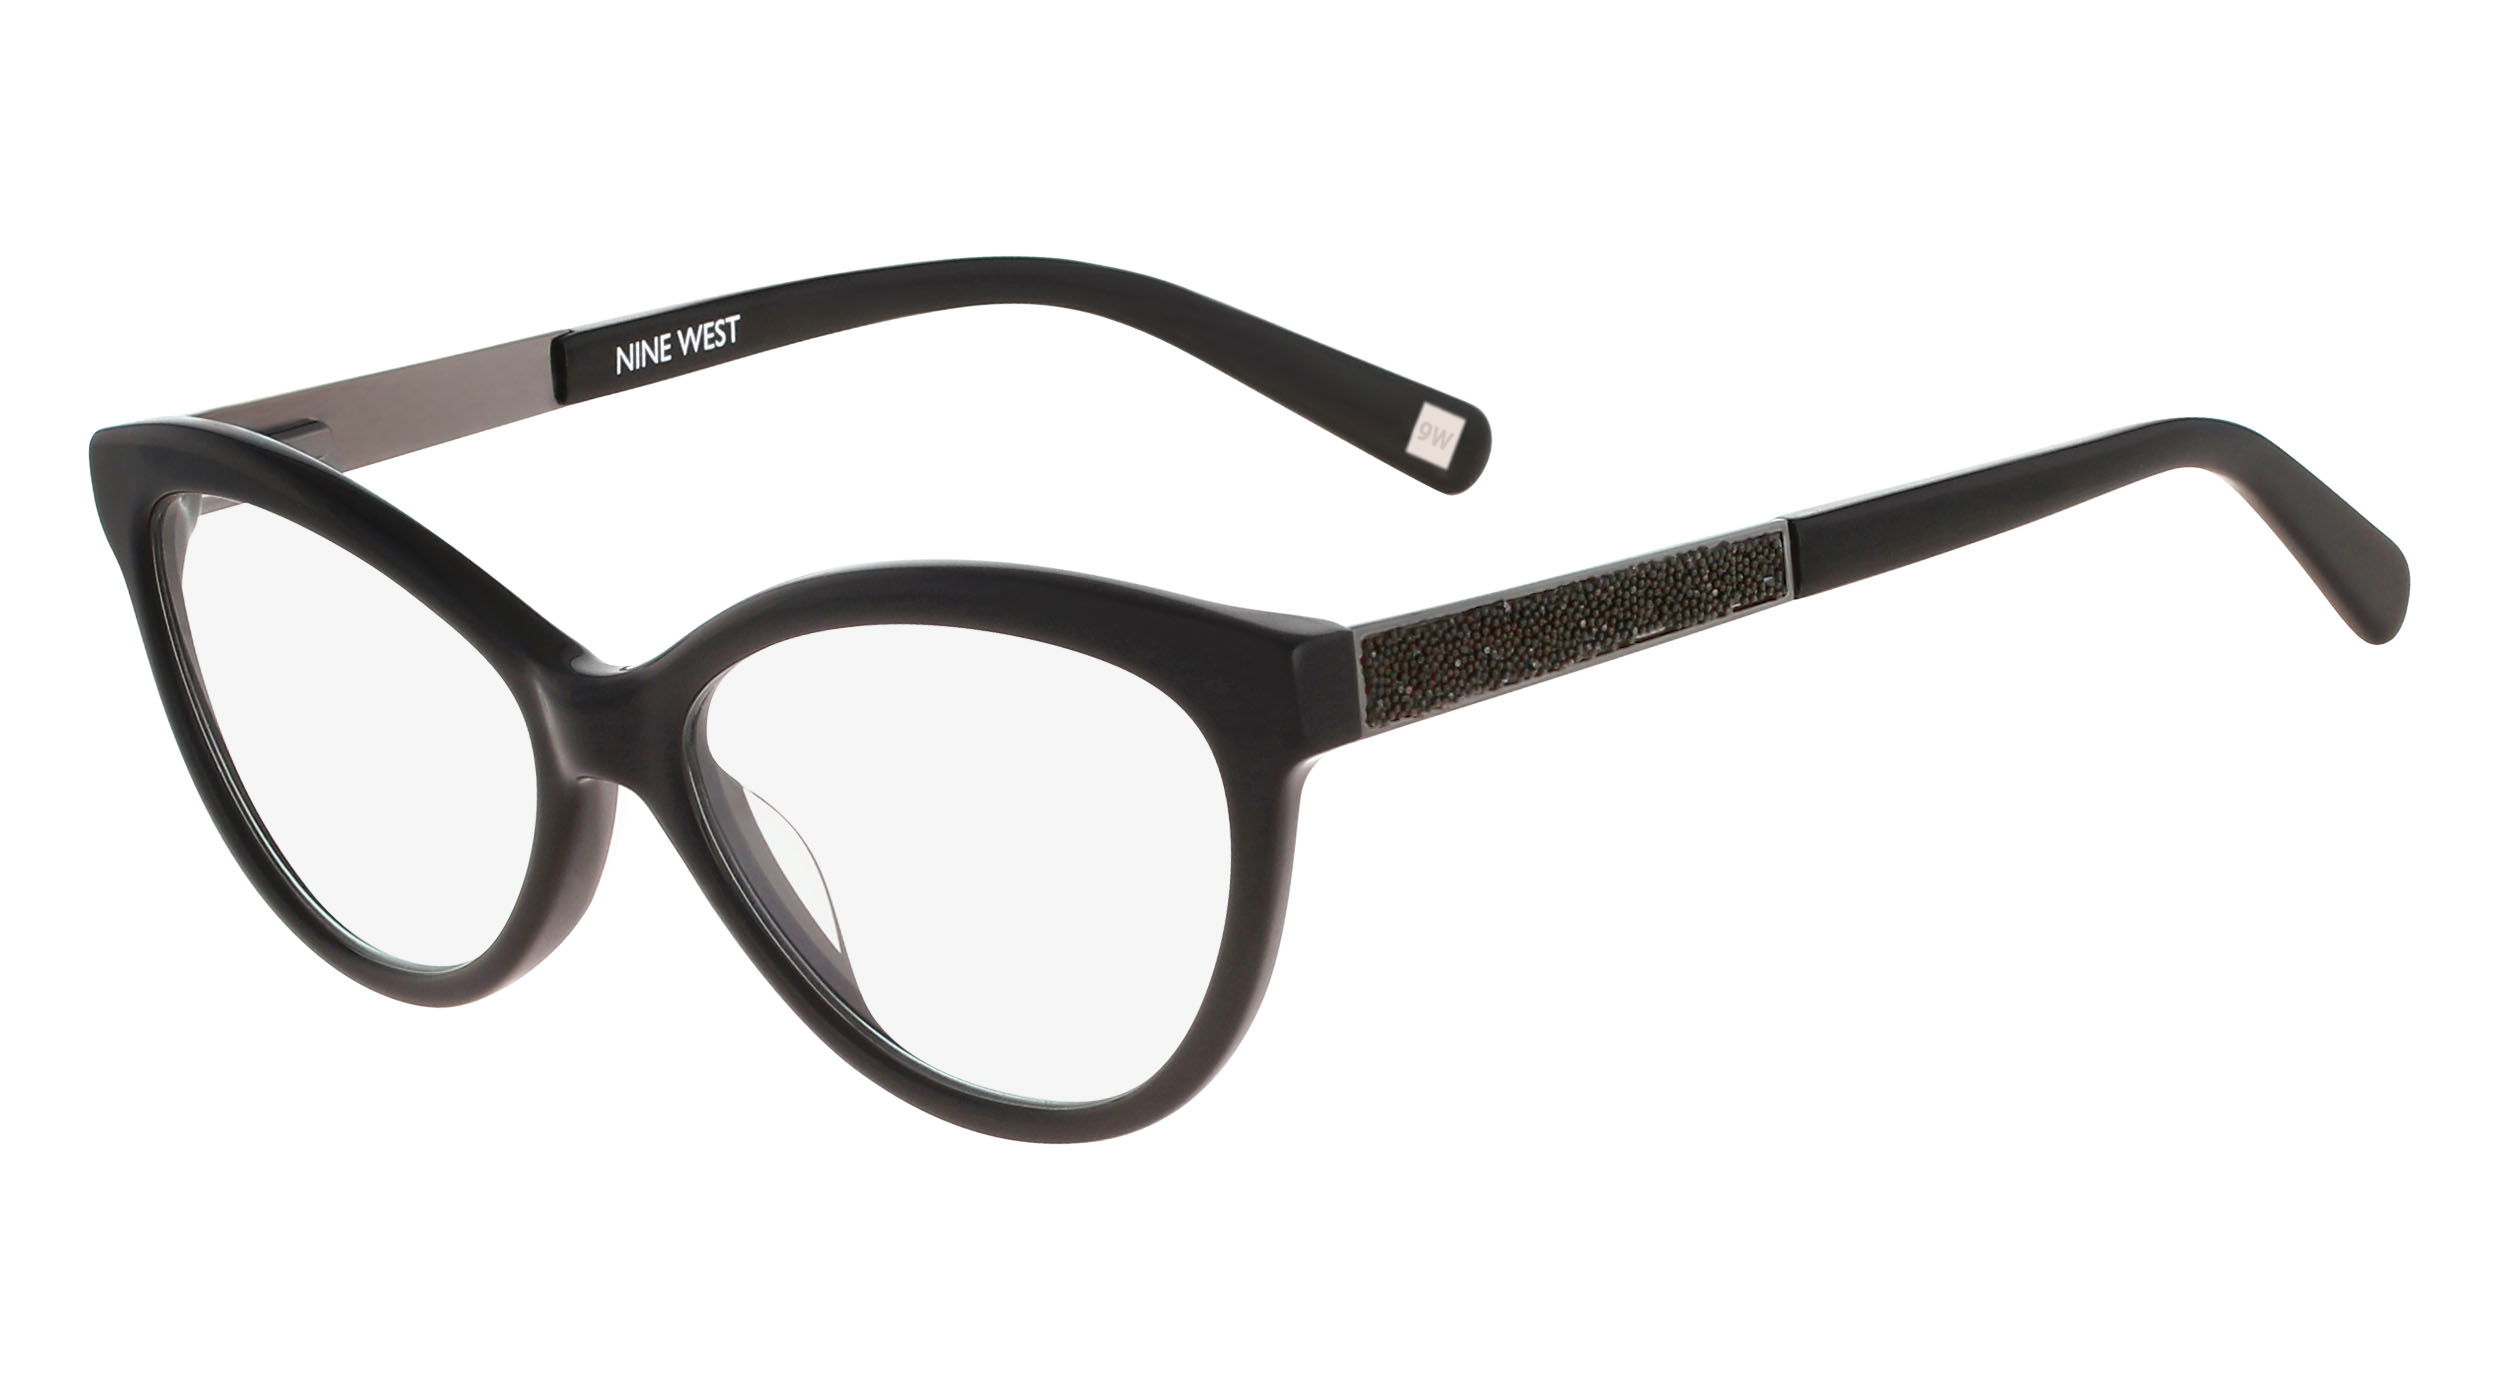 Frame Your Fall Look with New Glasses